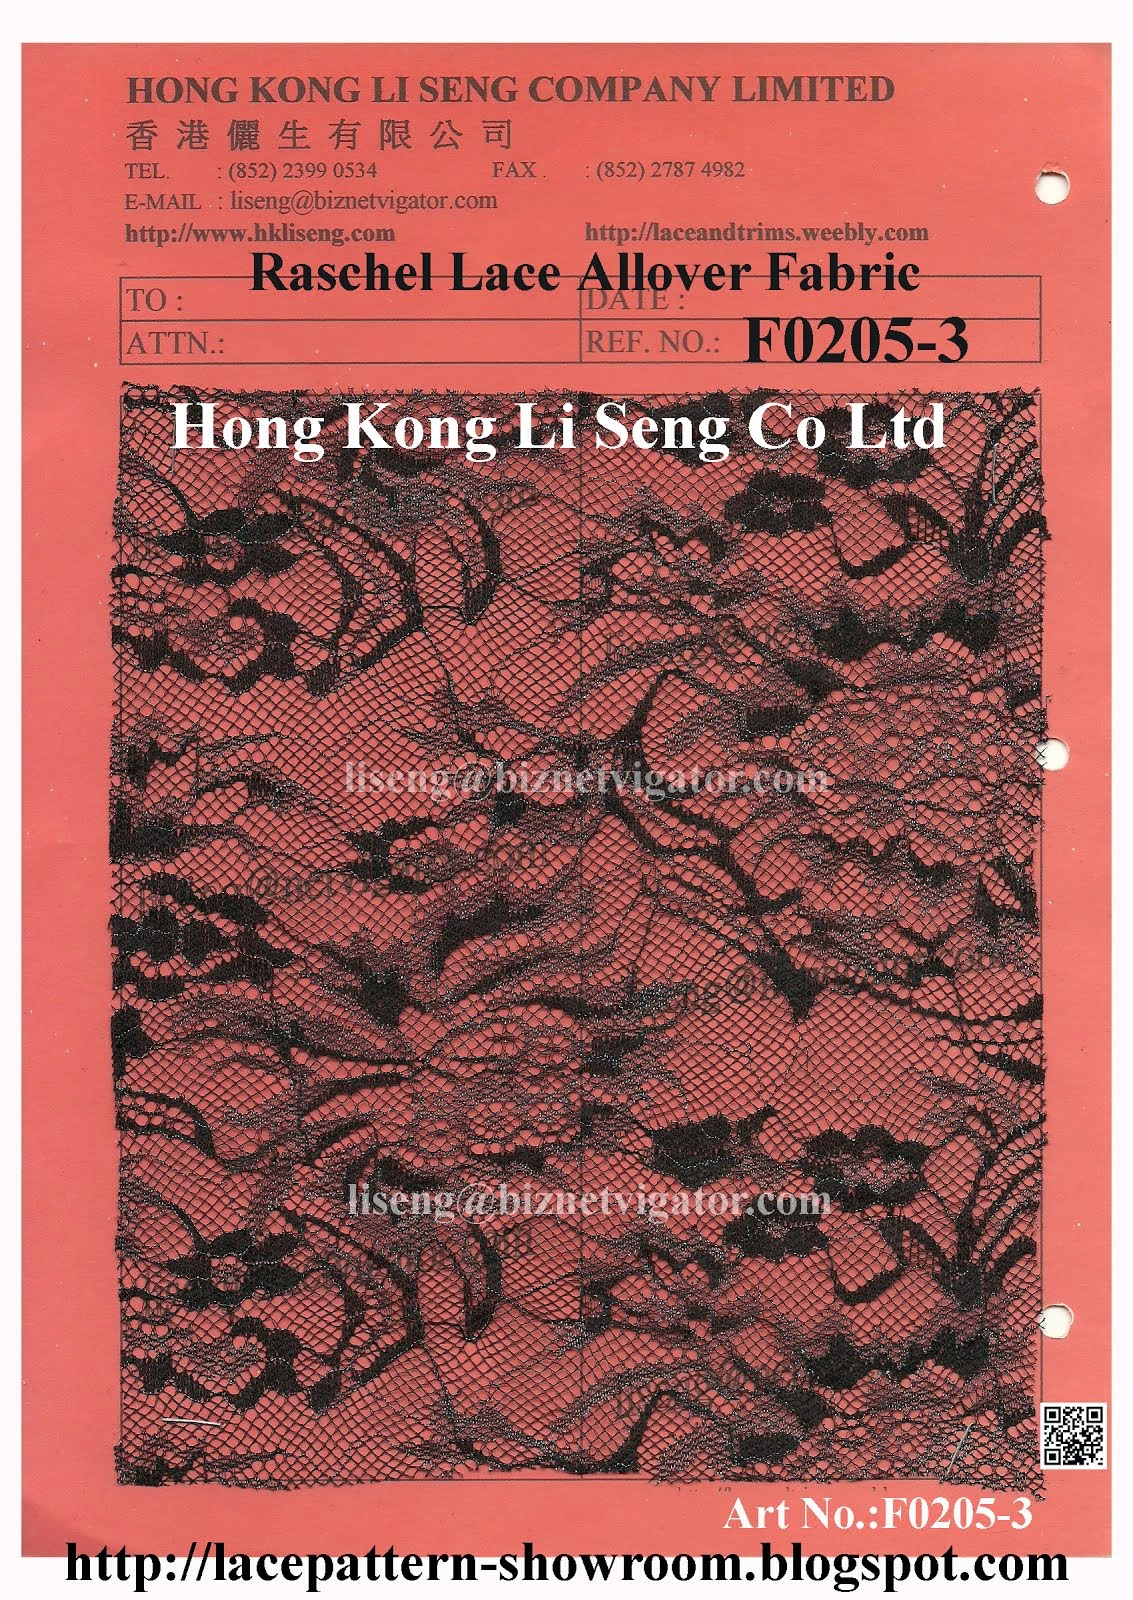 New Raschel Allover Lace Fabric Manufacturer - Hong Kong Li Seng Co Ltd